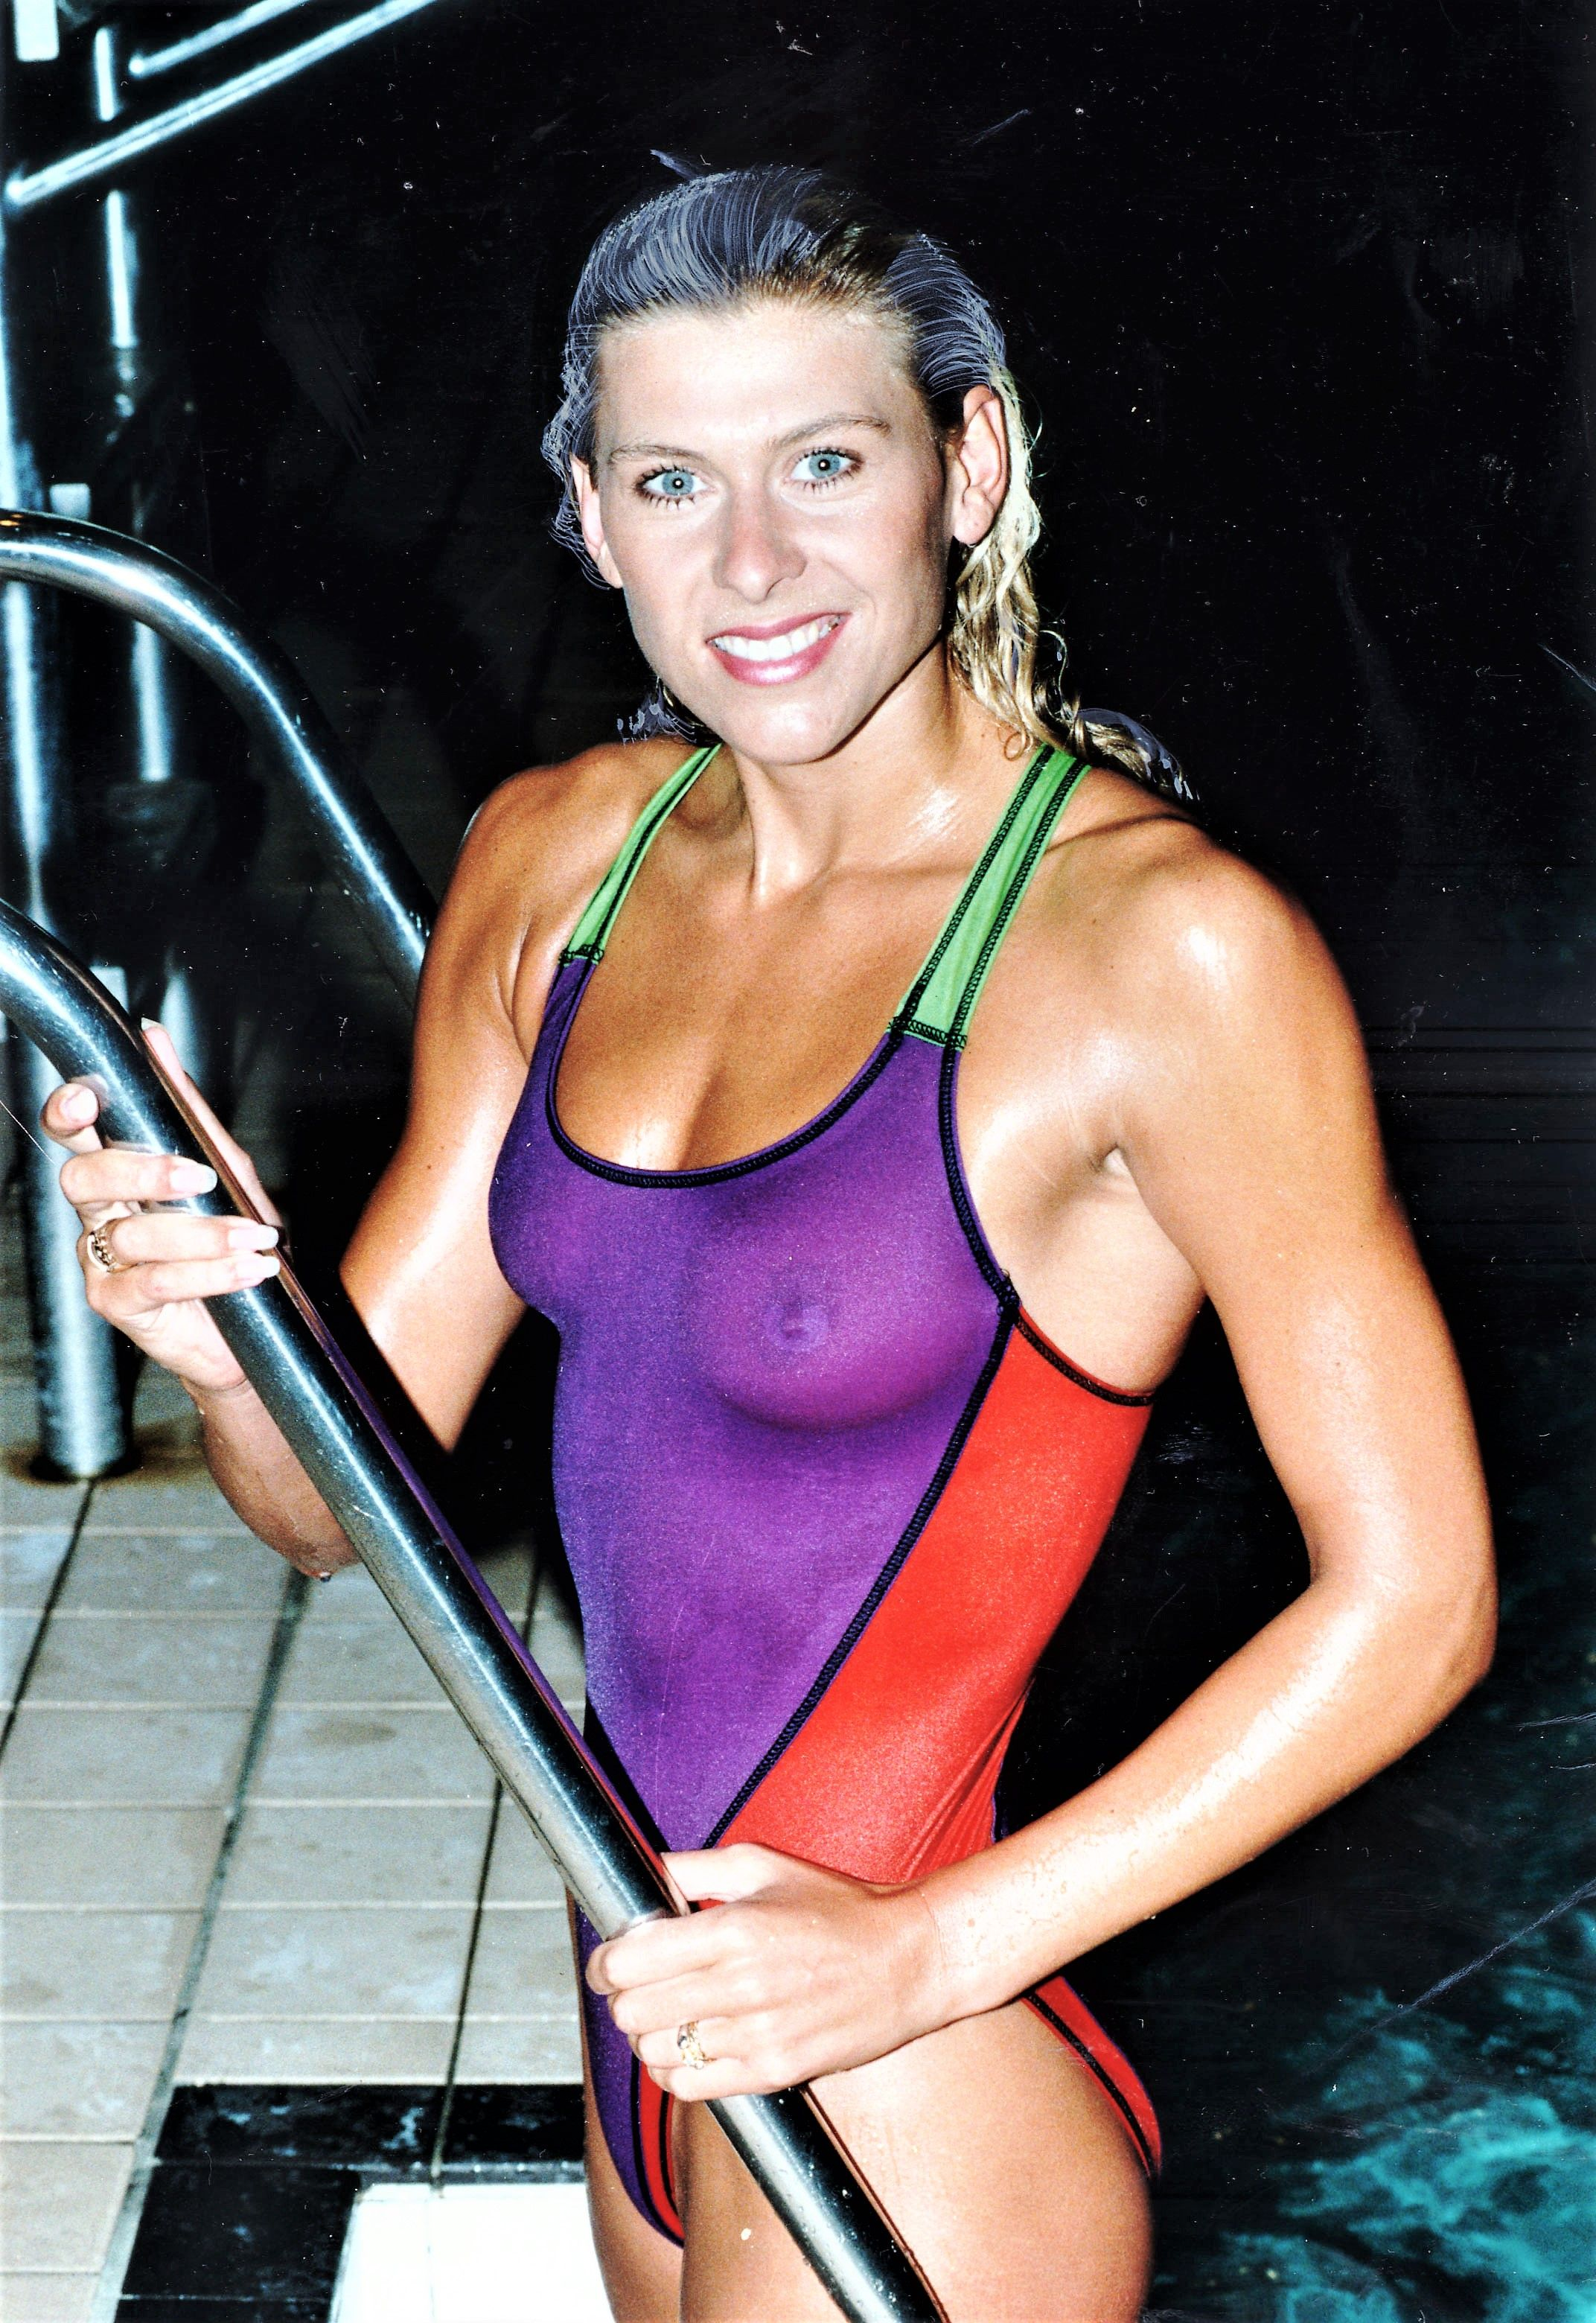 sharron davis see through to nipples sharron davies